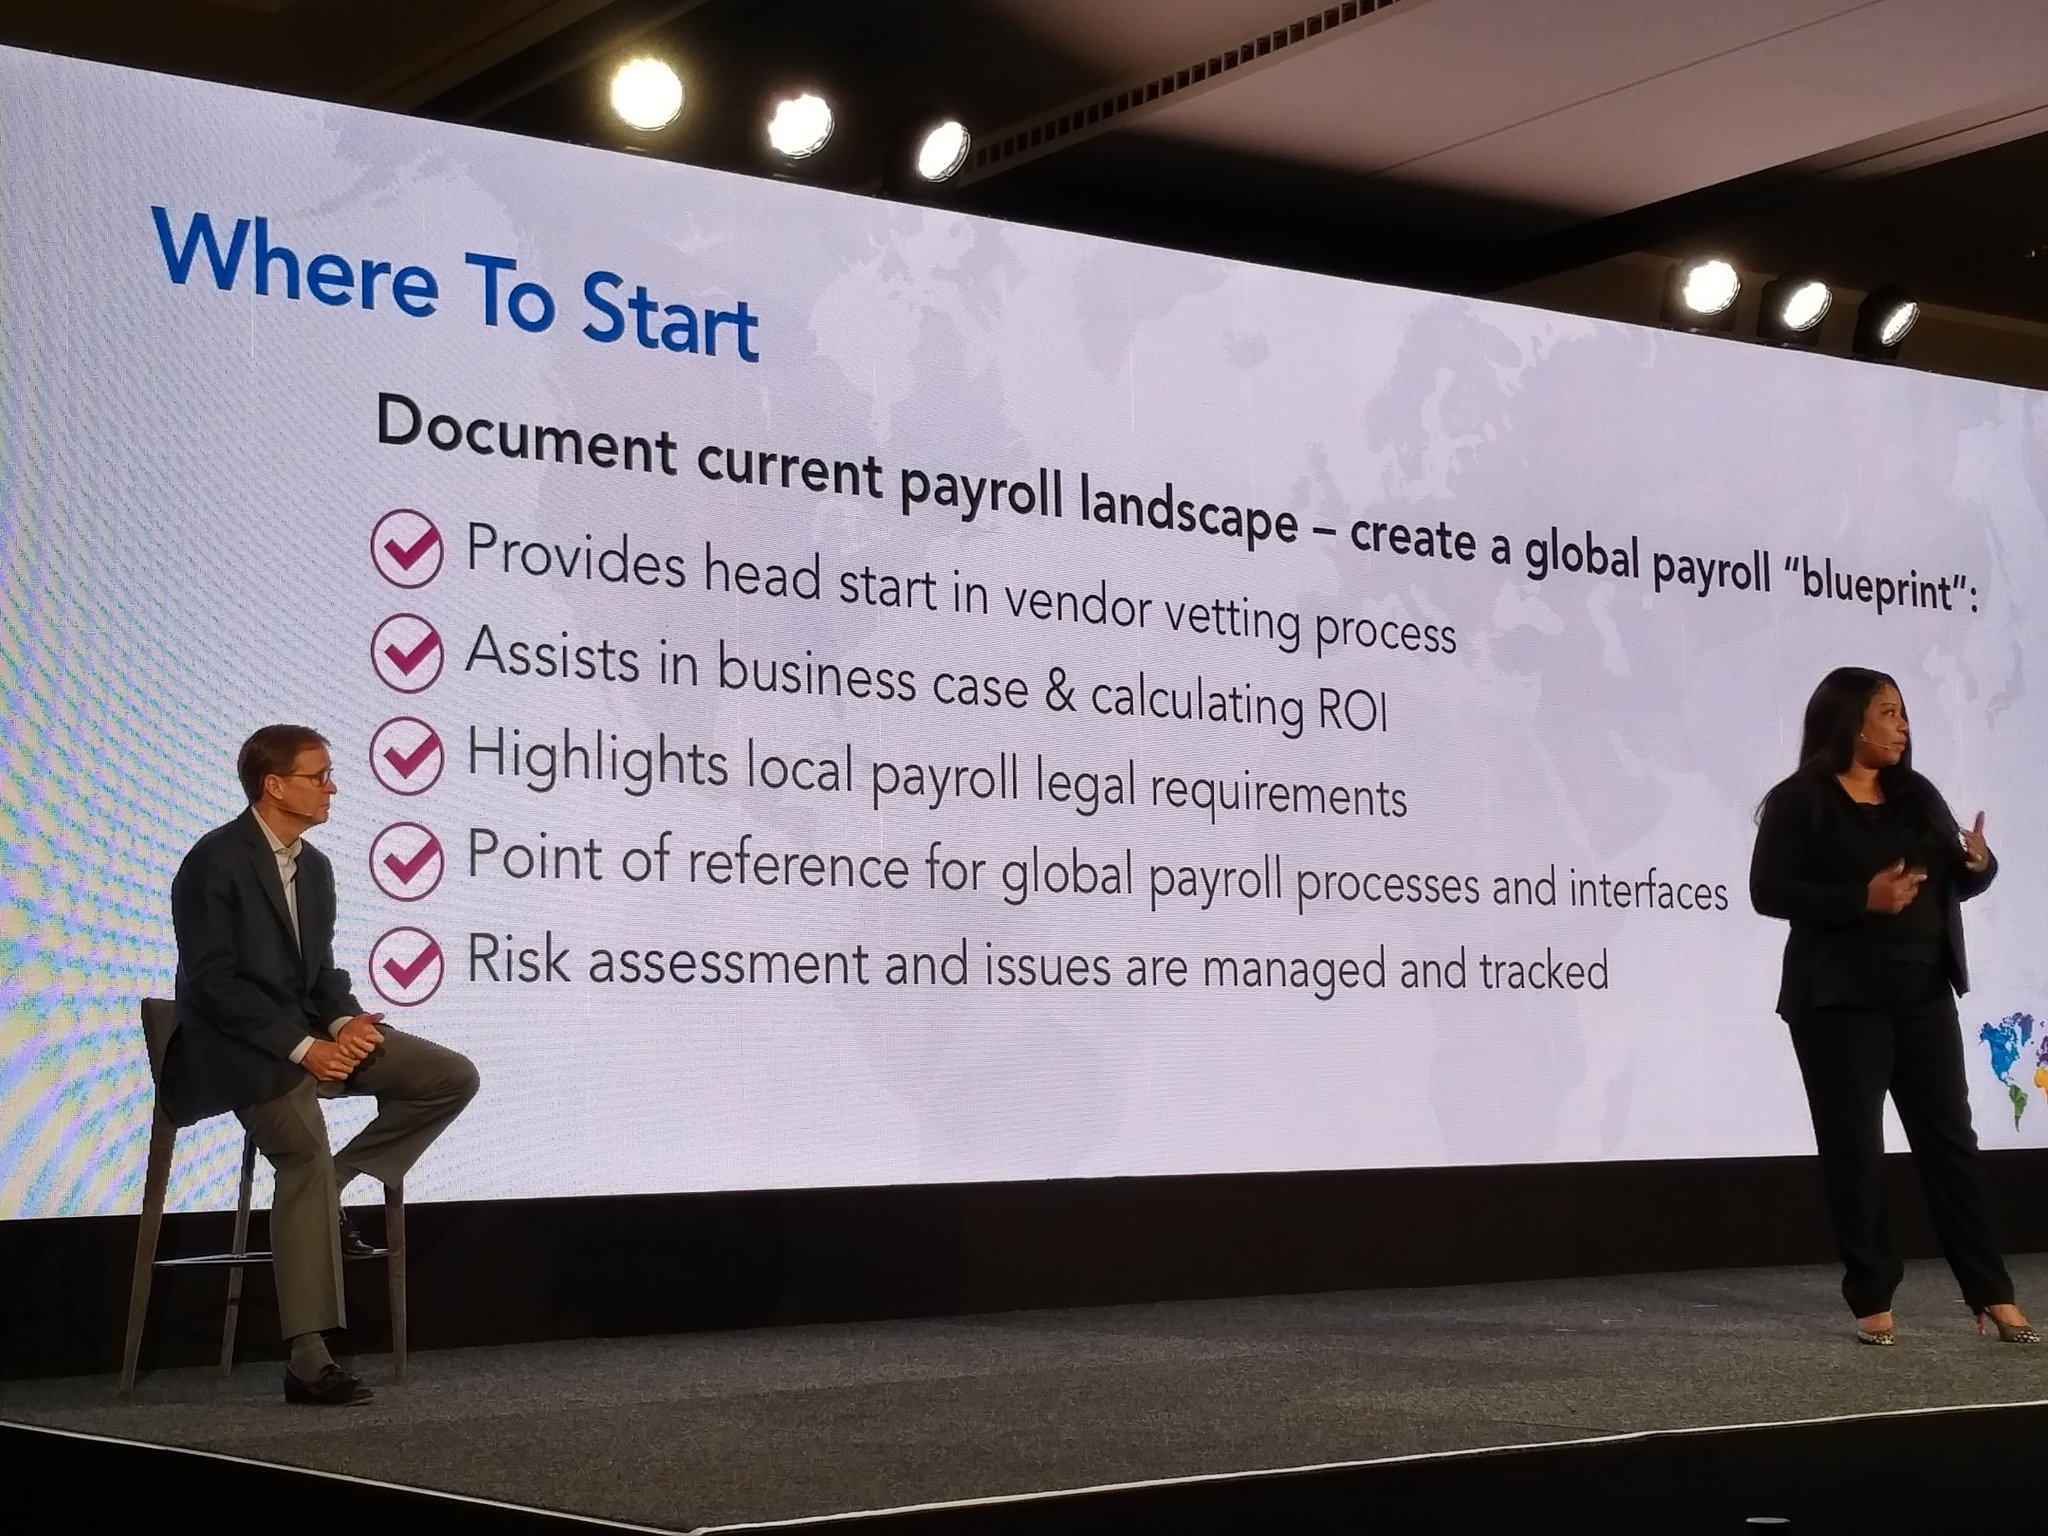 MyPOV -  Lara shares a great checklist how to get started on global #Payroll #ADPReThink https://t.co/Atc4yIcWVx